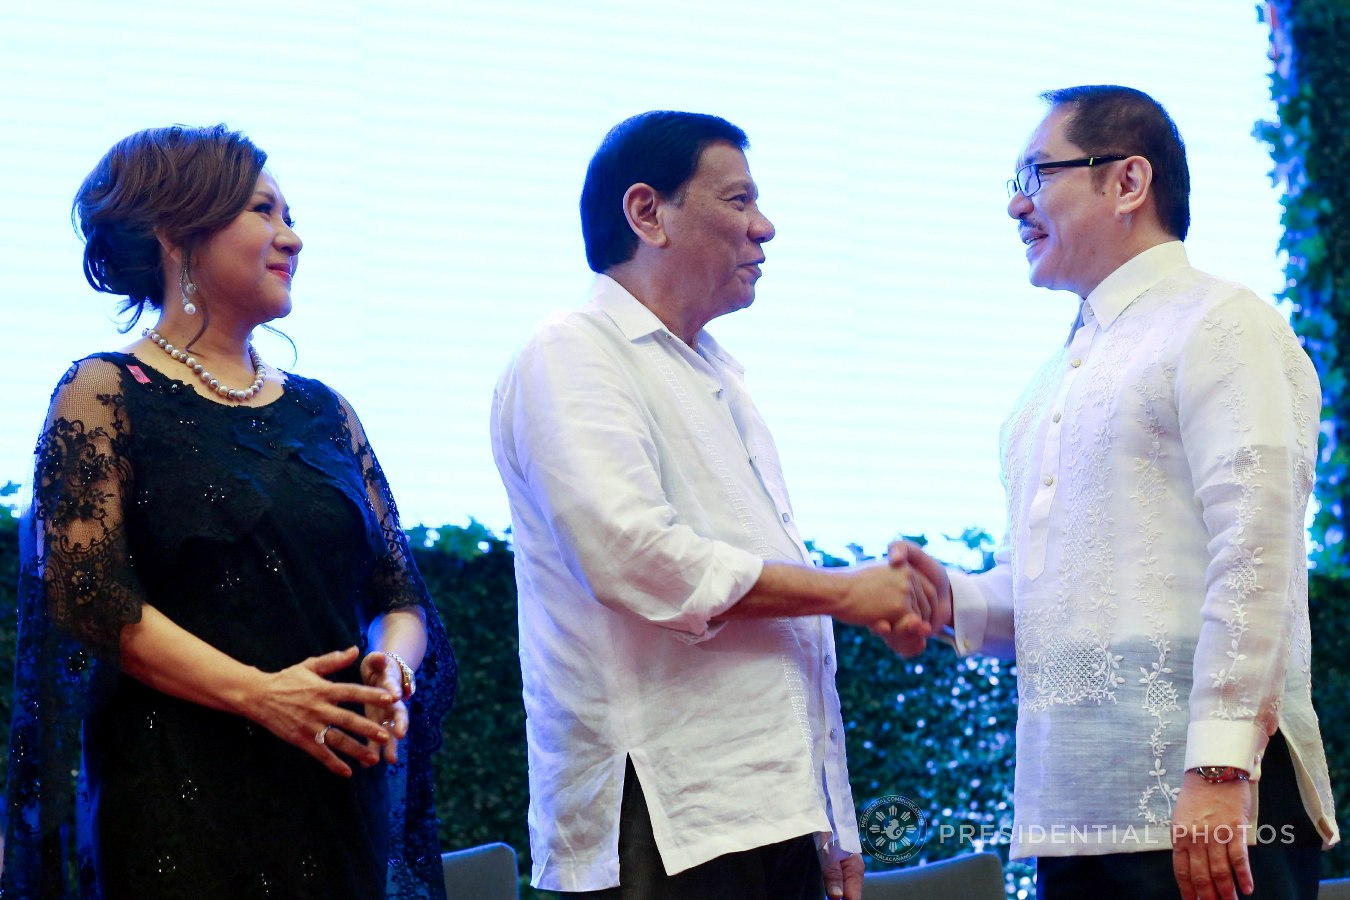 President Rodrigo Roa Duterte shows a gesture of appreciation to Southville International Schools and Colleges President Dr. Marl Ferenal who is among the partners of the Anti-Trafficking OFW Movement (ATOM) recognized during the 7th anniversary of the public service show, 'Buhay OFW', at the Sofitel Philippine Plaza in Pasay City on October 18, 2017. Also in the photo is ATOM Founding Chairperson Marissa Del Mar. RICHARD MADELO/PRESIDENTIAL PHOTO